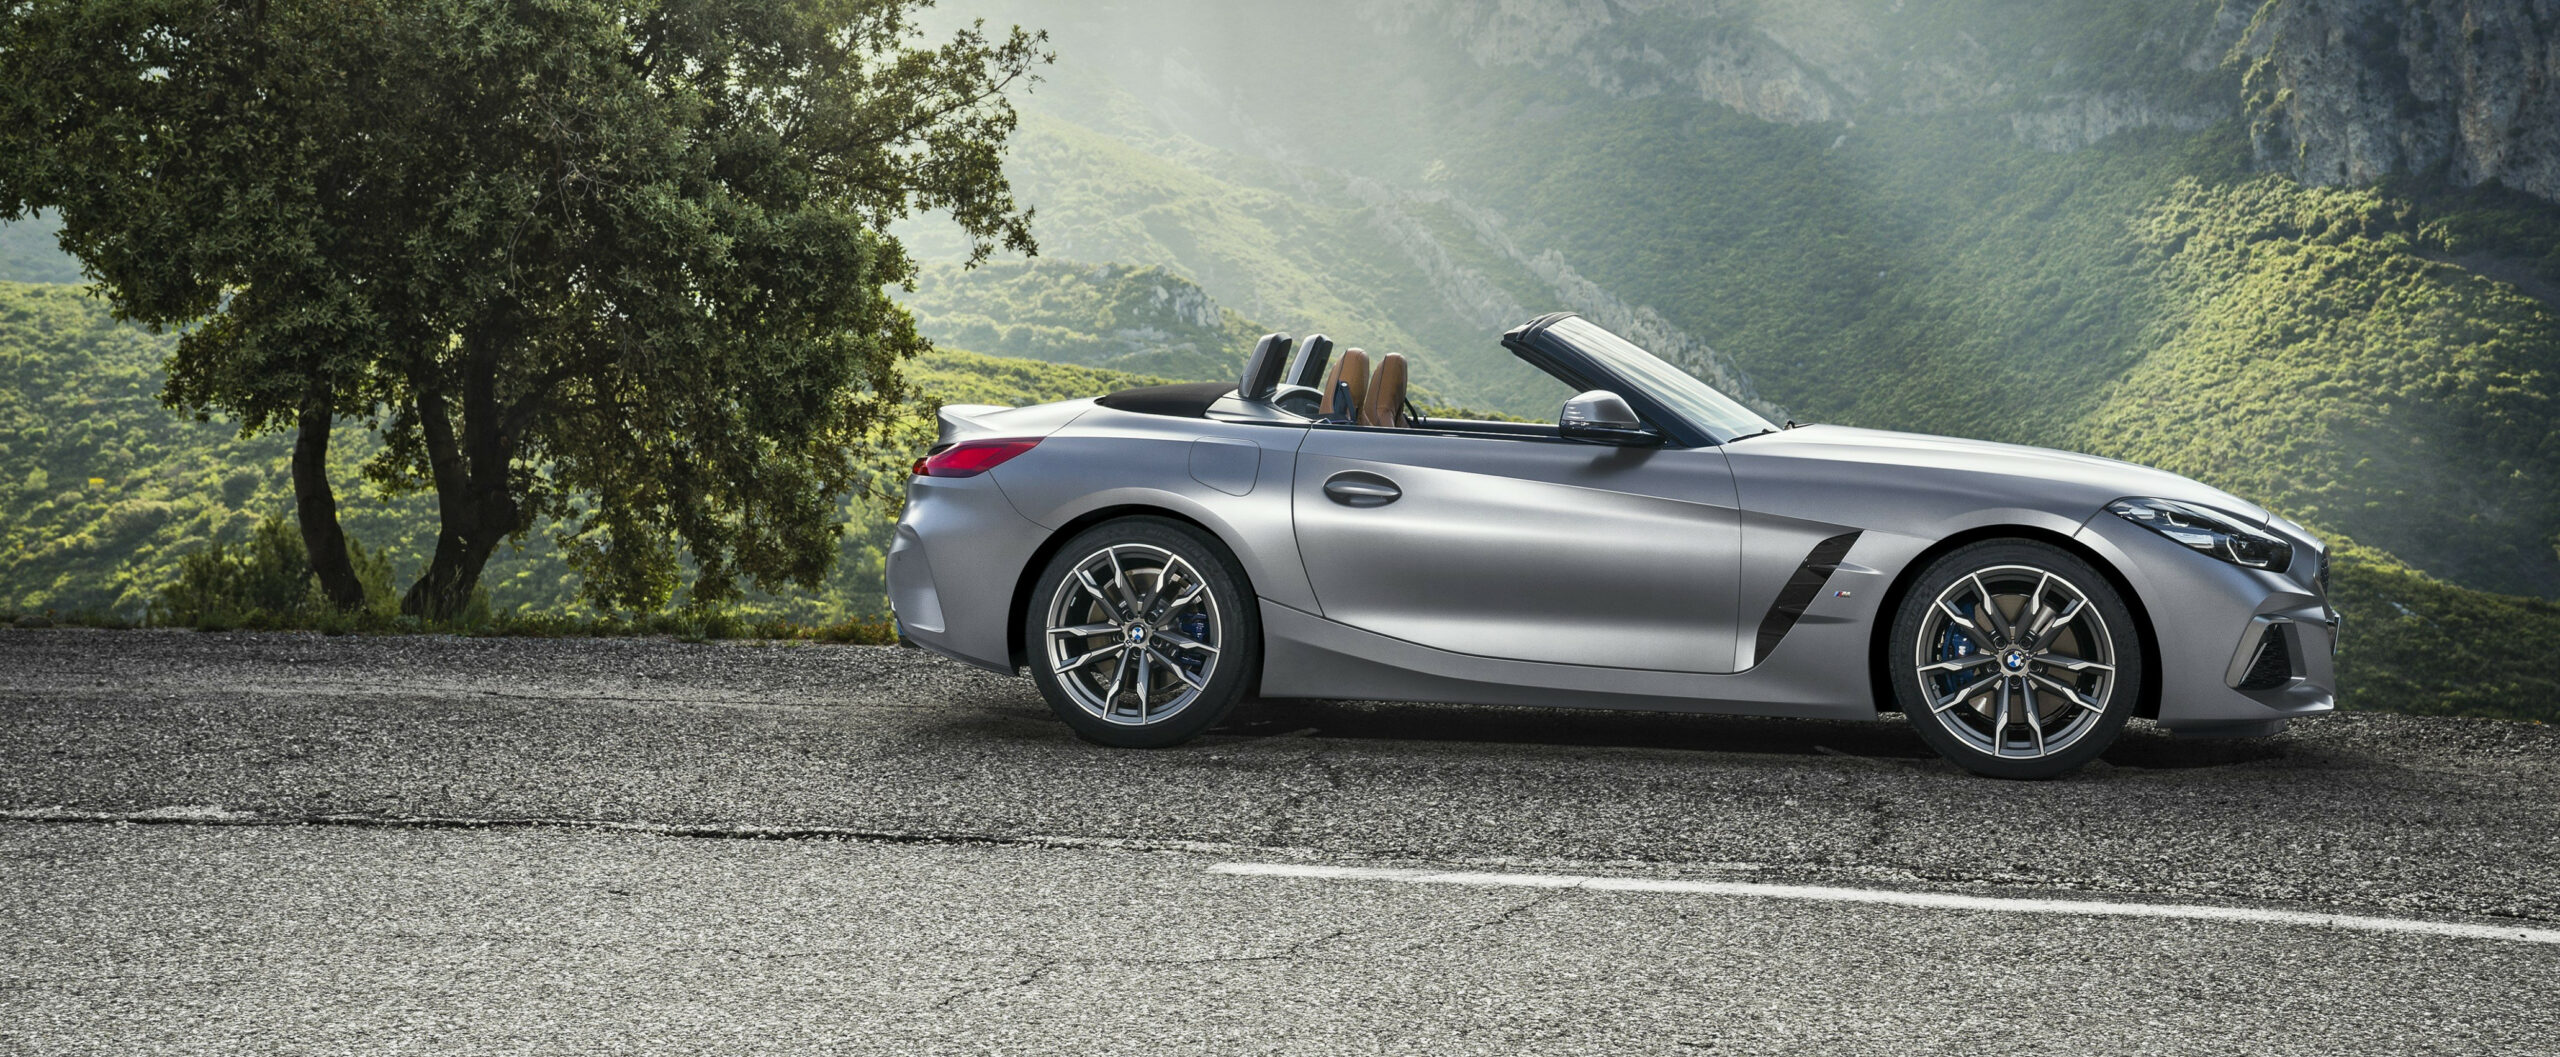 New BMW Z10 Lease Offers & Prices - Calabasas CA